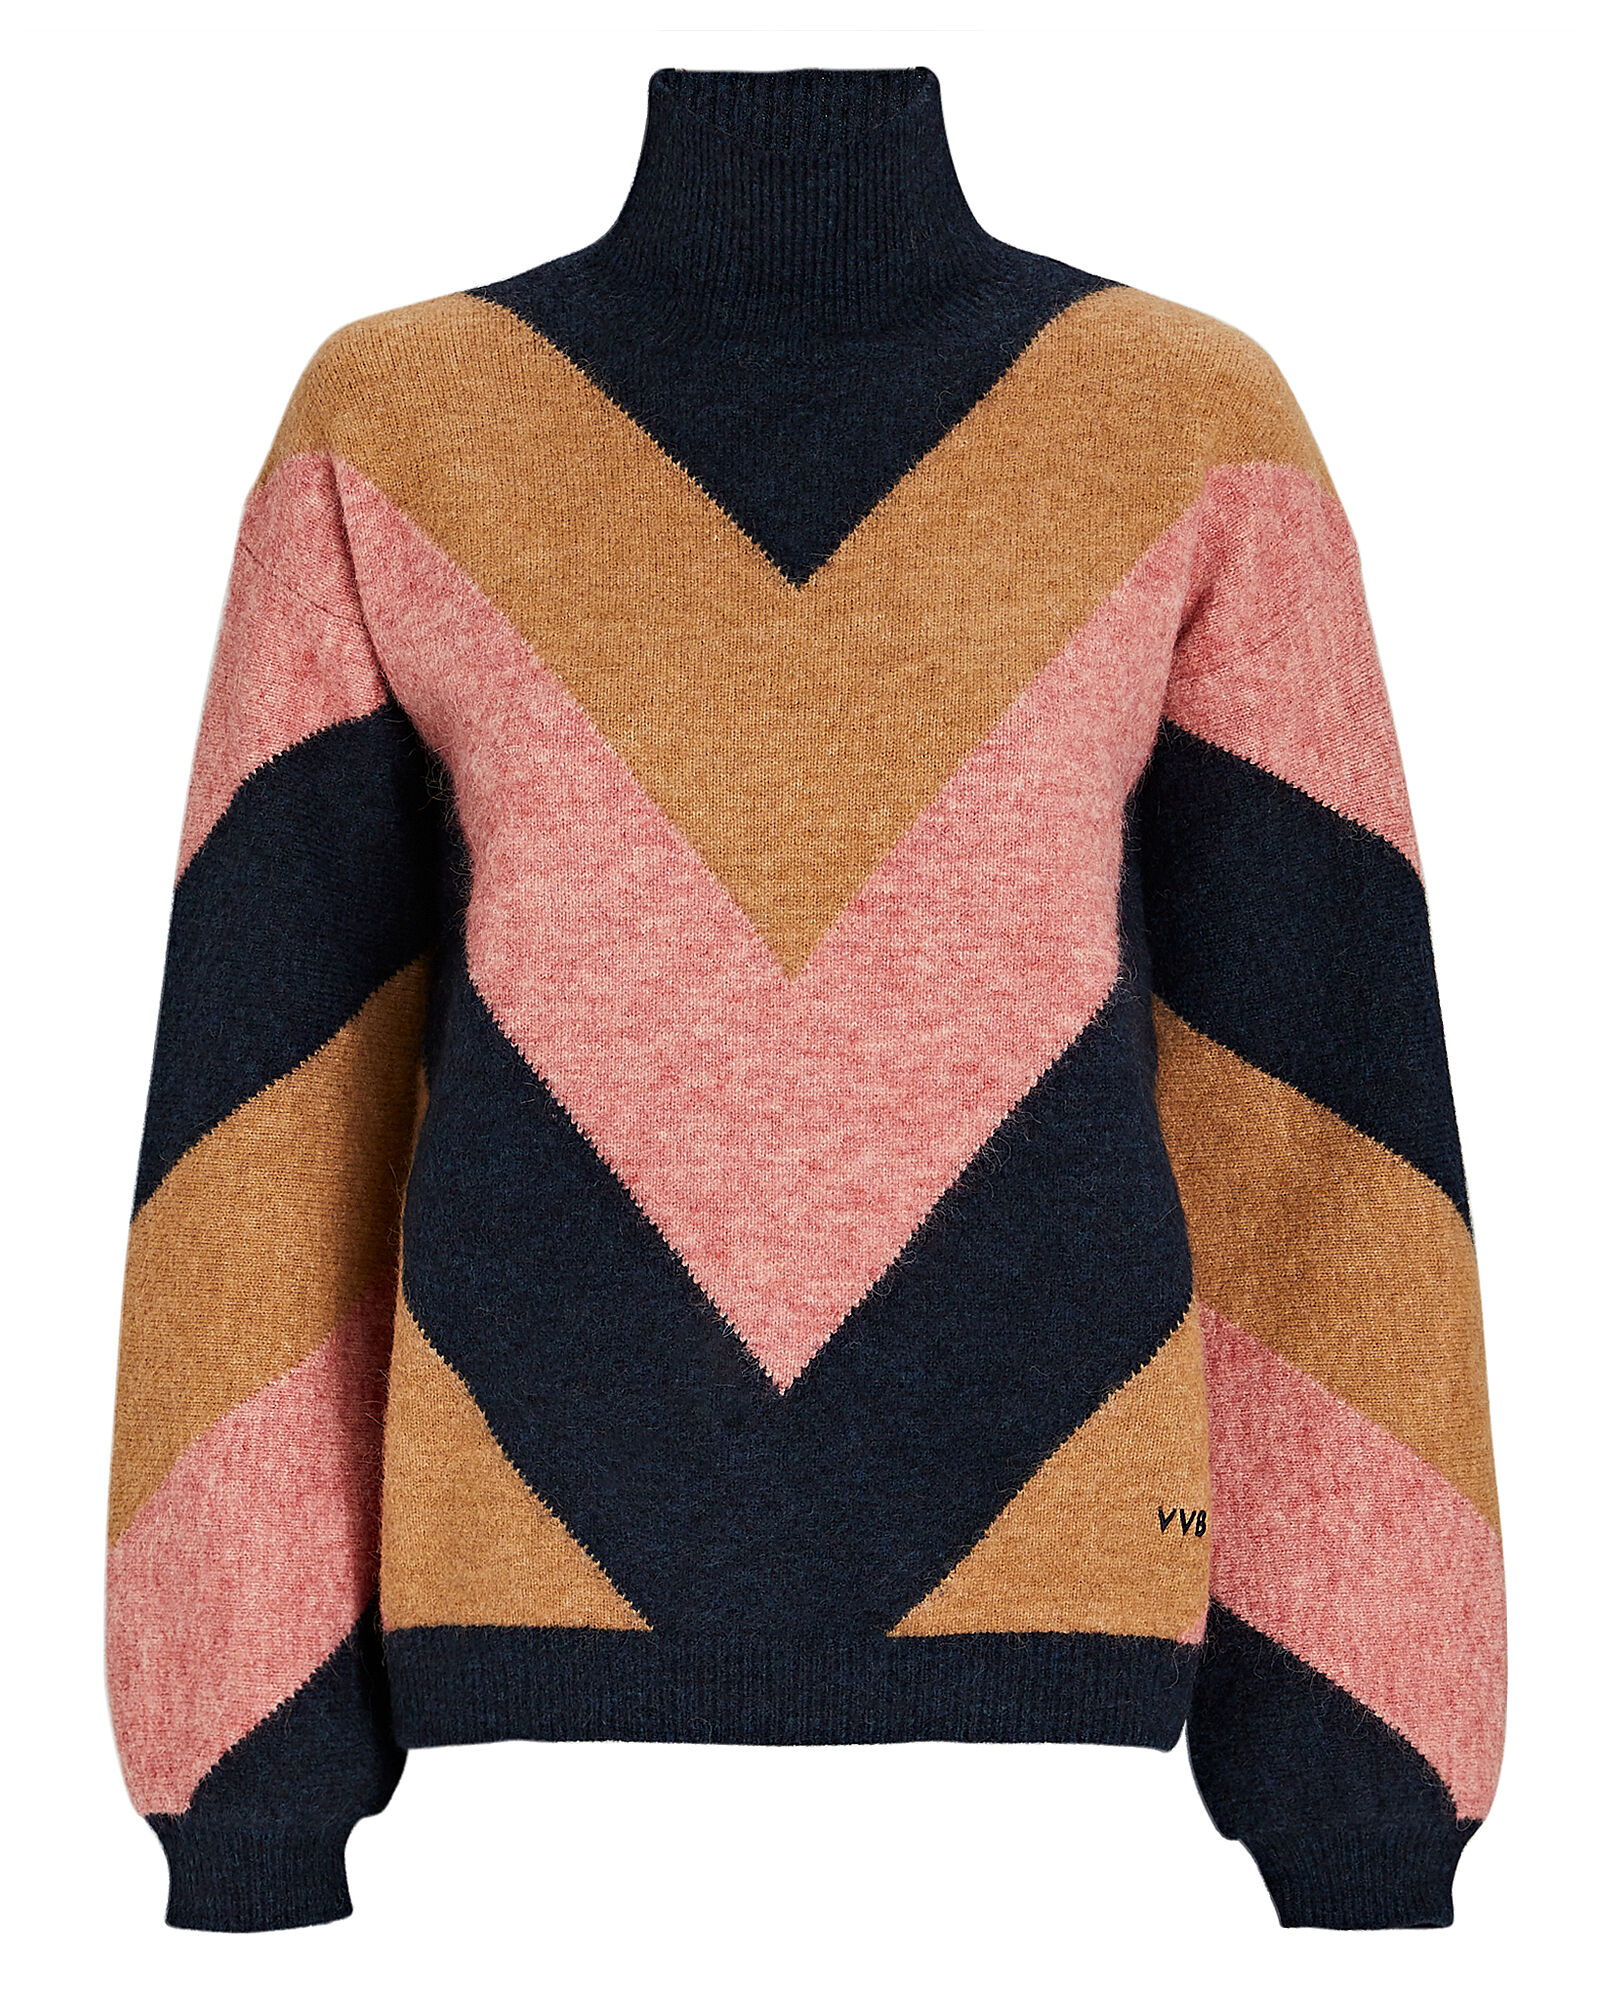 Oversized Chevron Turtleneck Sweater, BEIGE/PINK/BLACK, hi-res